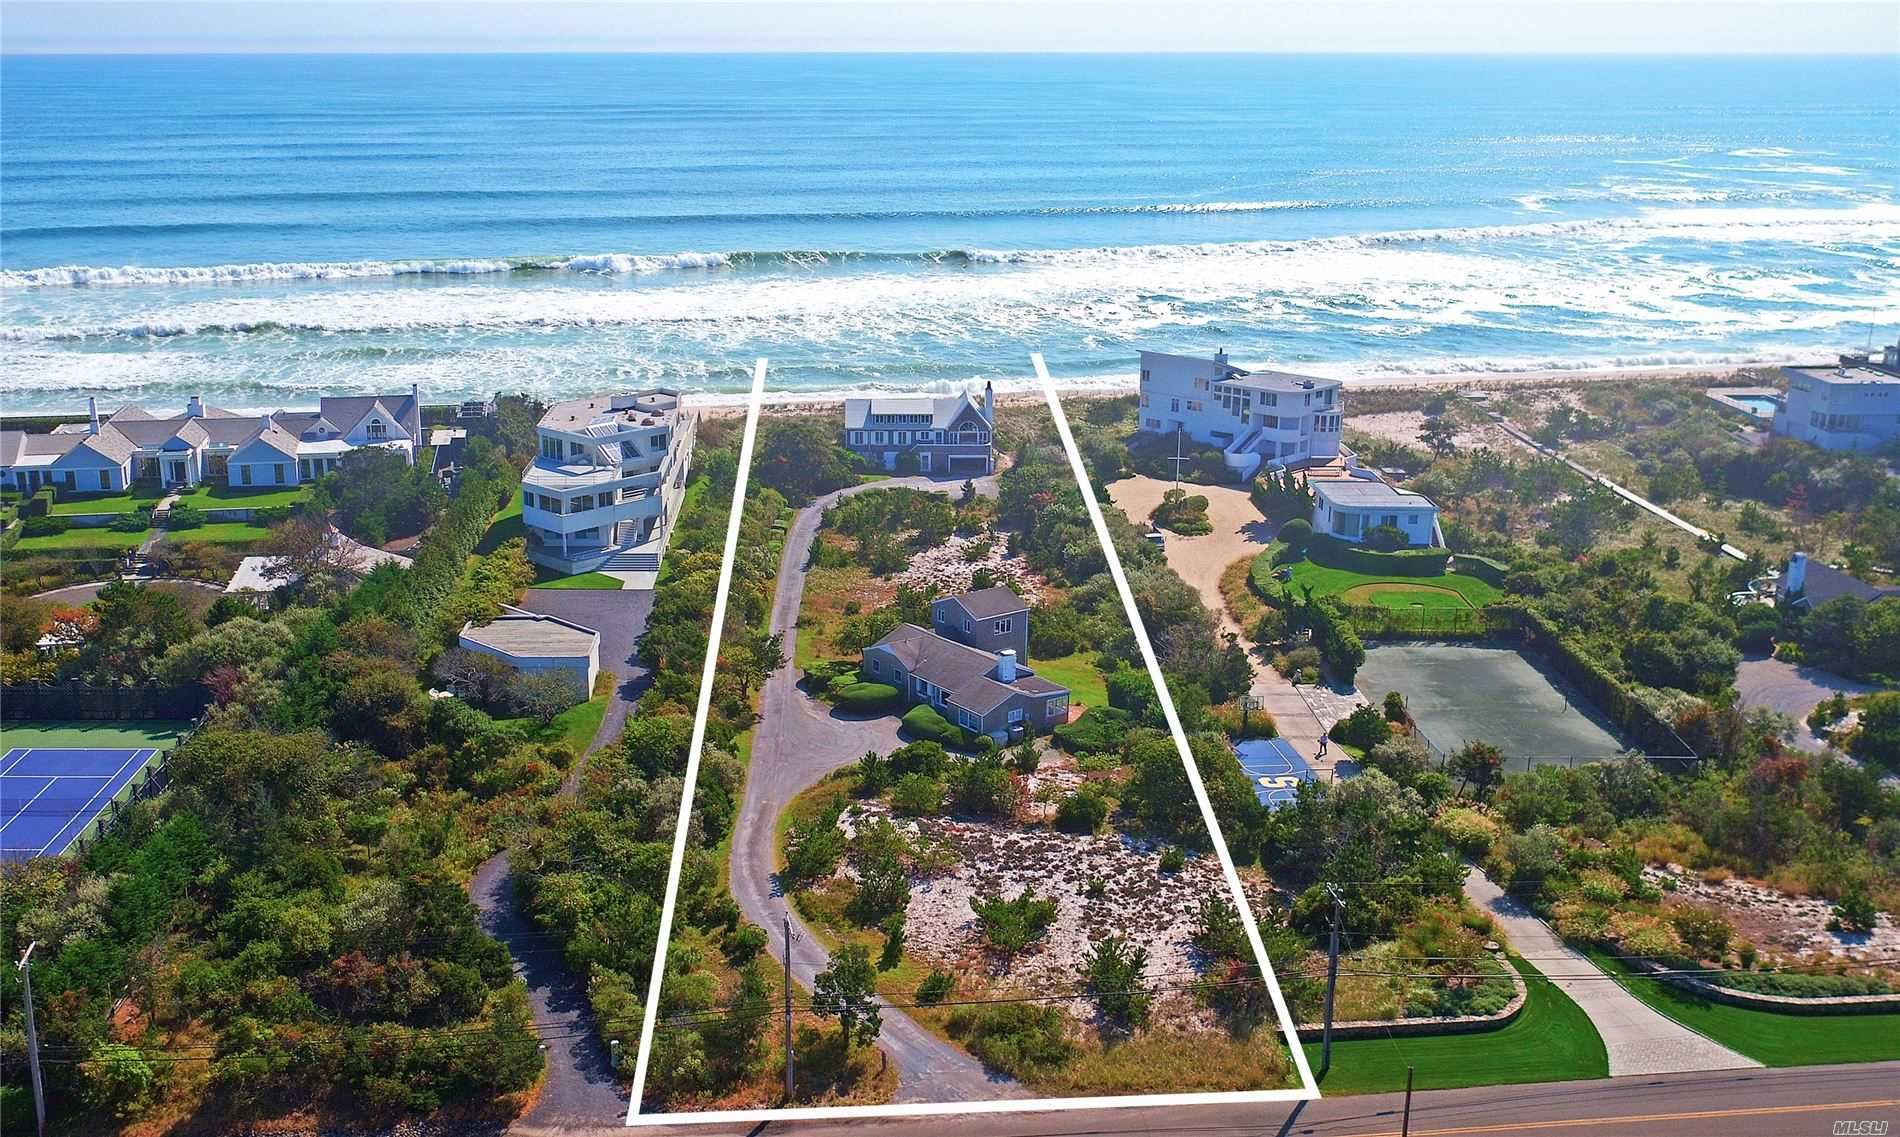 182 Dune Rd, Quogue, NY 11959 - MLS#: 3217150